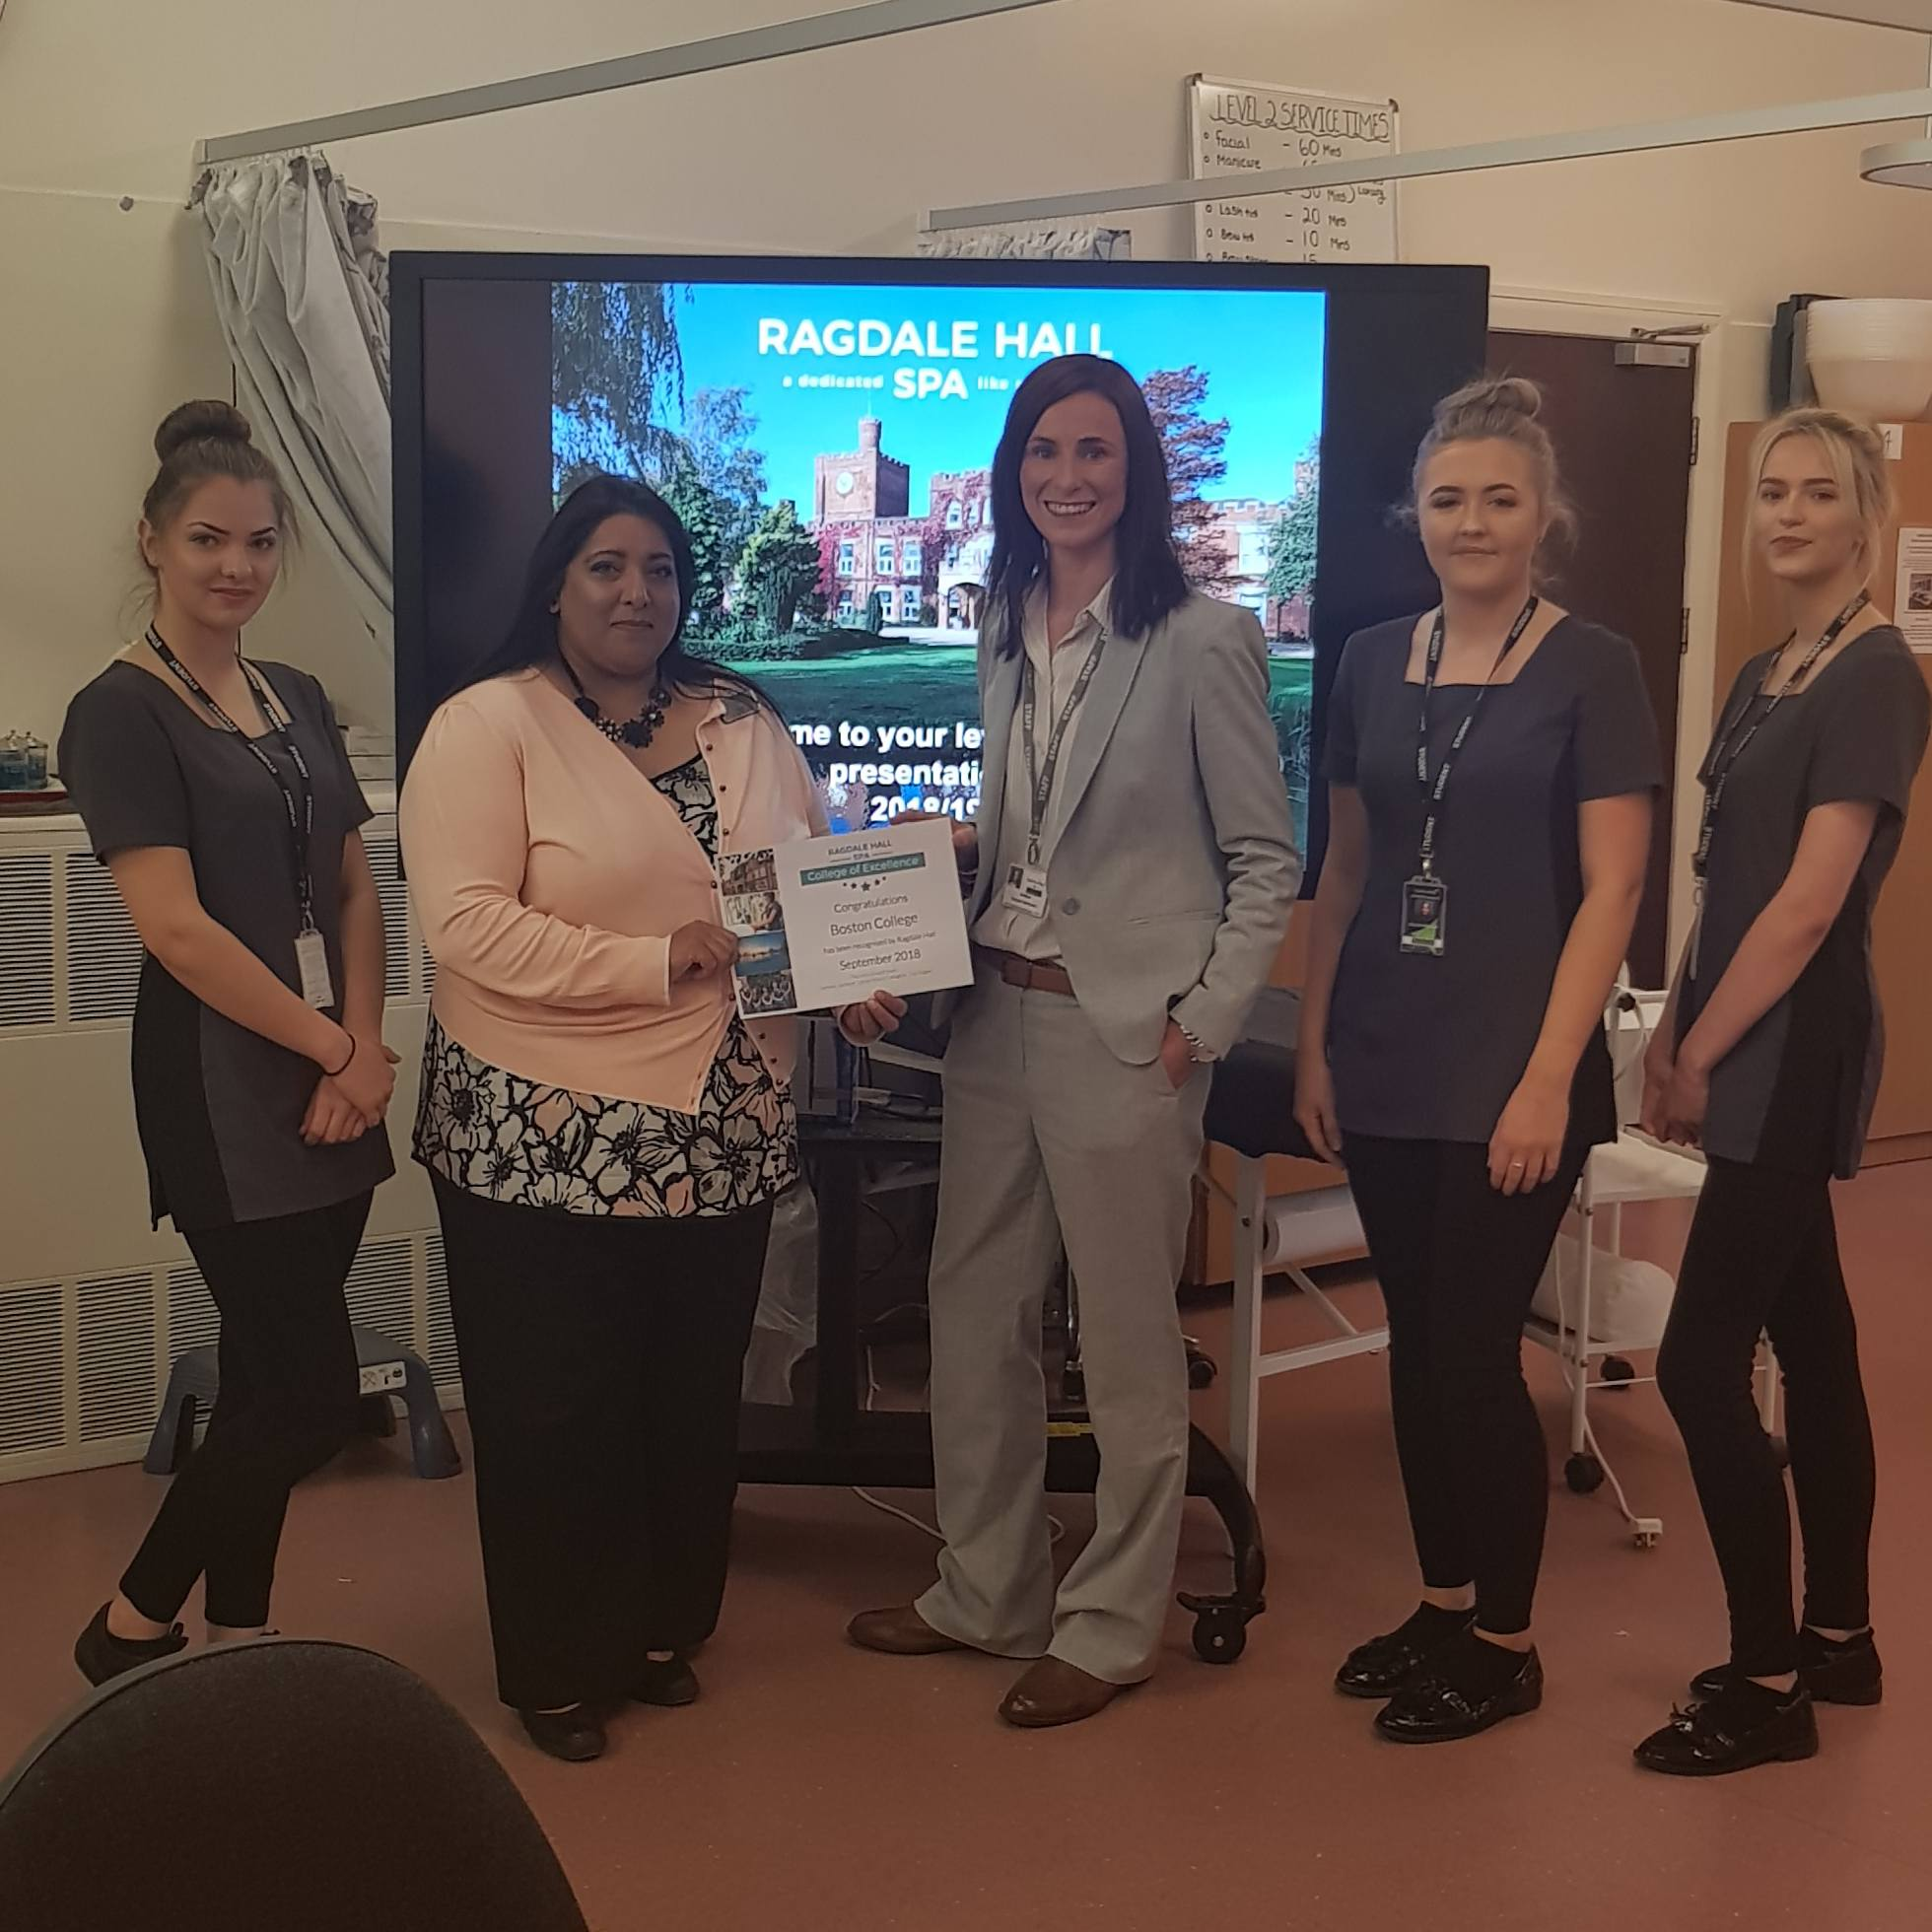 College of Excellence Presentation - Ragdale Hall Spa